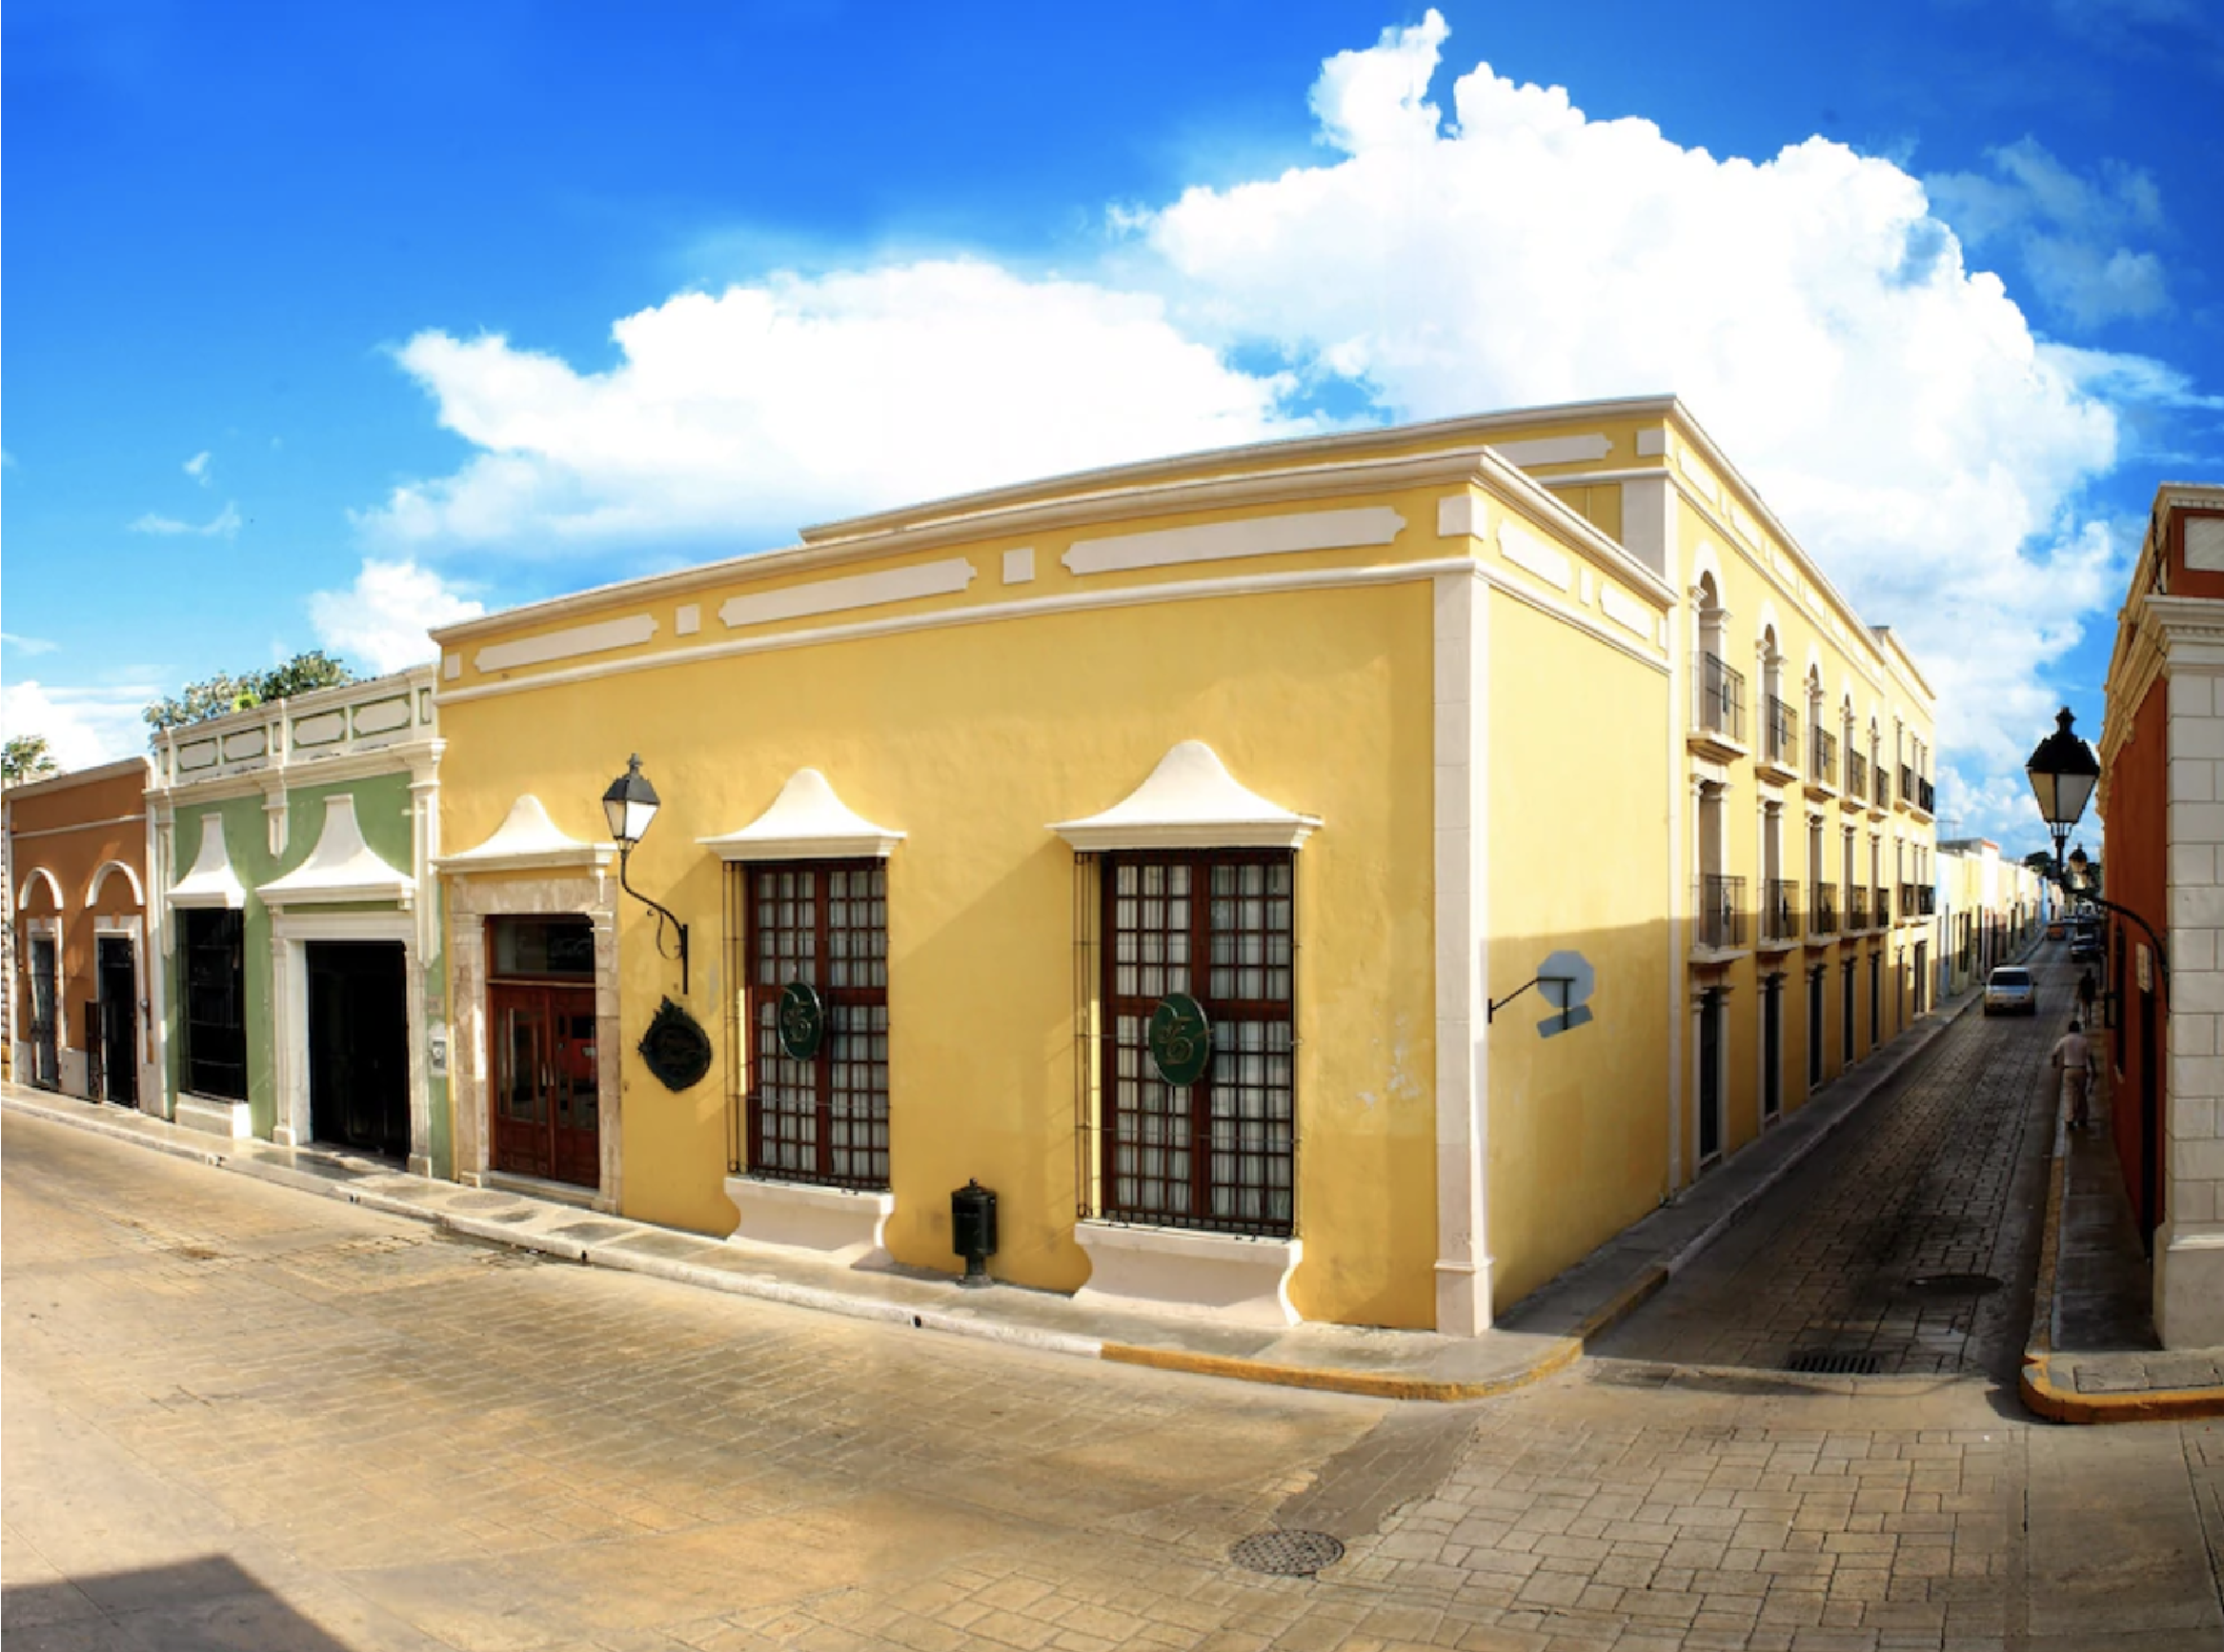 hotel Francis Drake - Day 4. February 20 Morning visit Uxmal. Afternoon Campeche city tour. O/N Campache